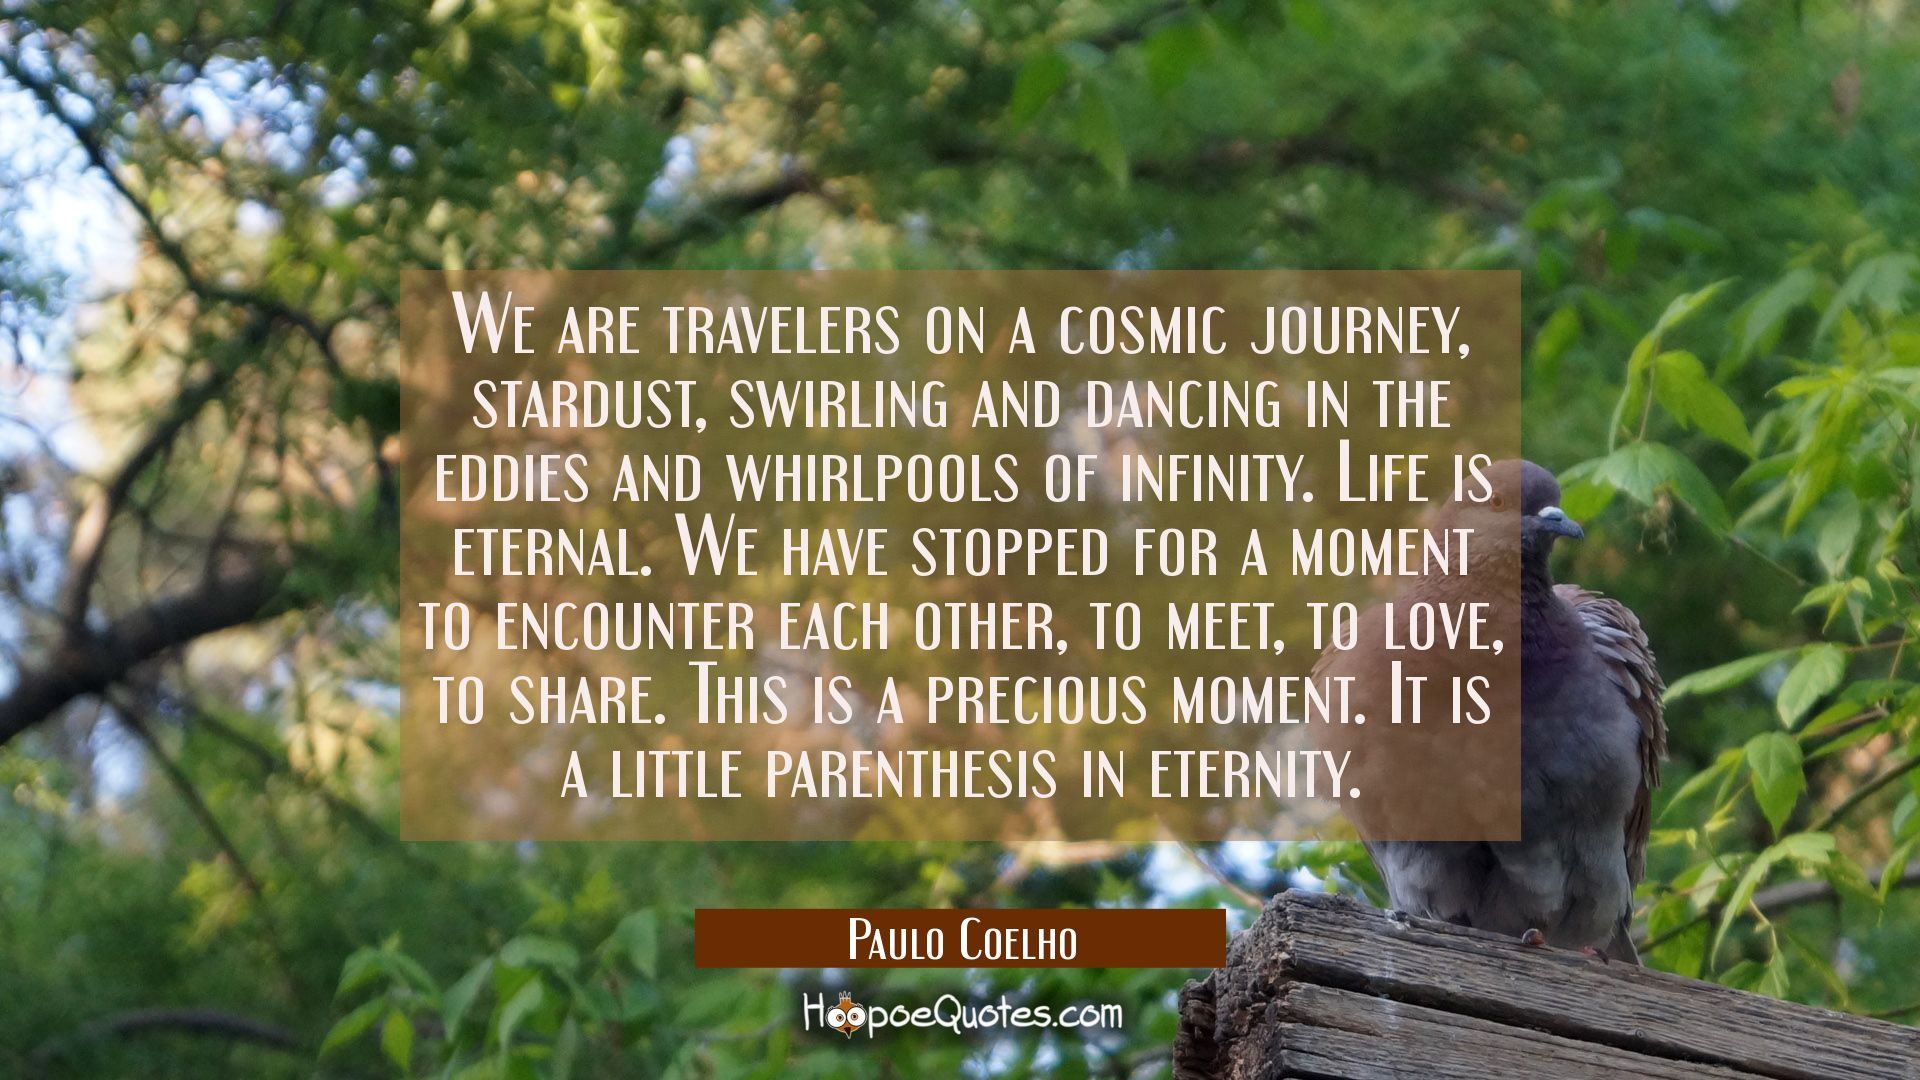 """Image result for """"We are travelers on a cosmic journey, stardust, swirling and dancing in the eddies and whirlpools of infinity. Life is eternal. We have stopped for a moment to encounter each other, to meet, to love, to share. This is a precious moment. It is a little parenthesis in eternity."""""""